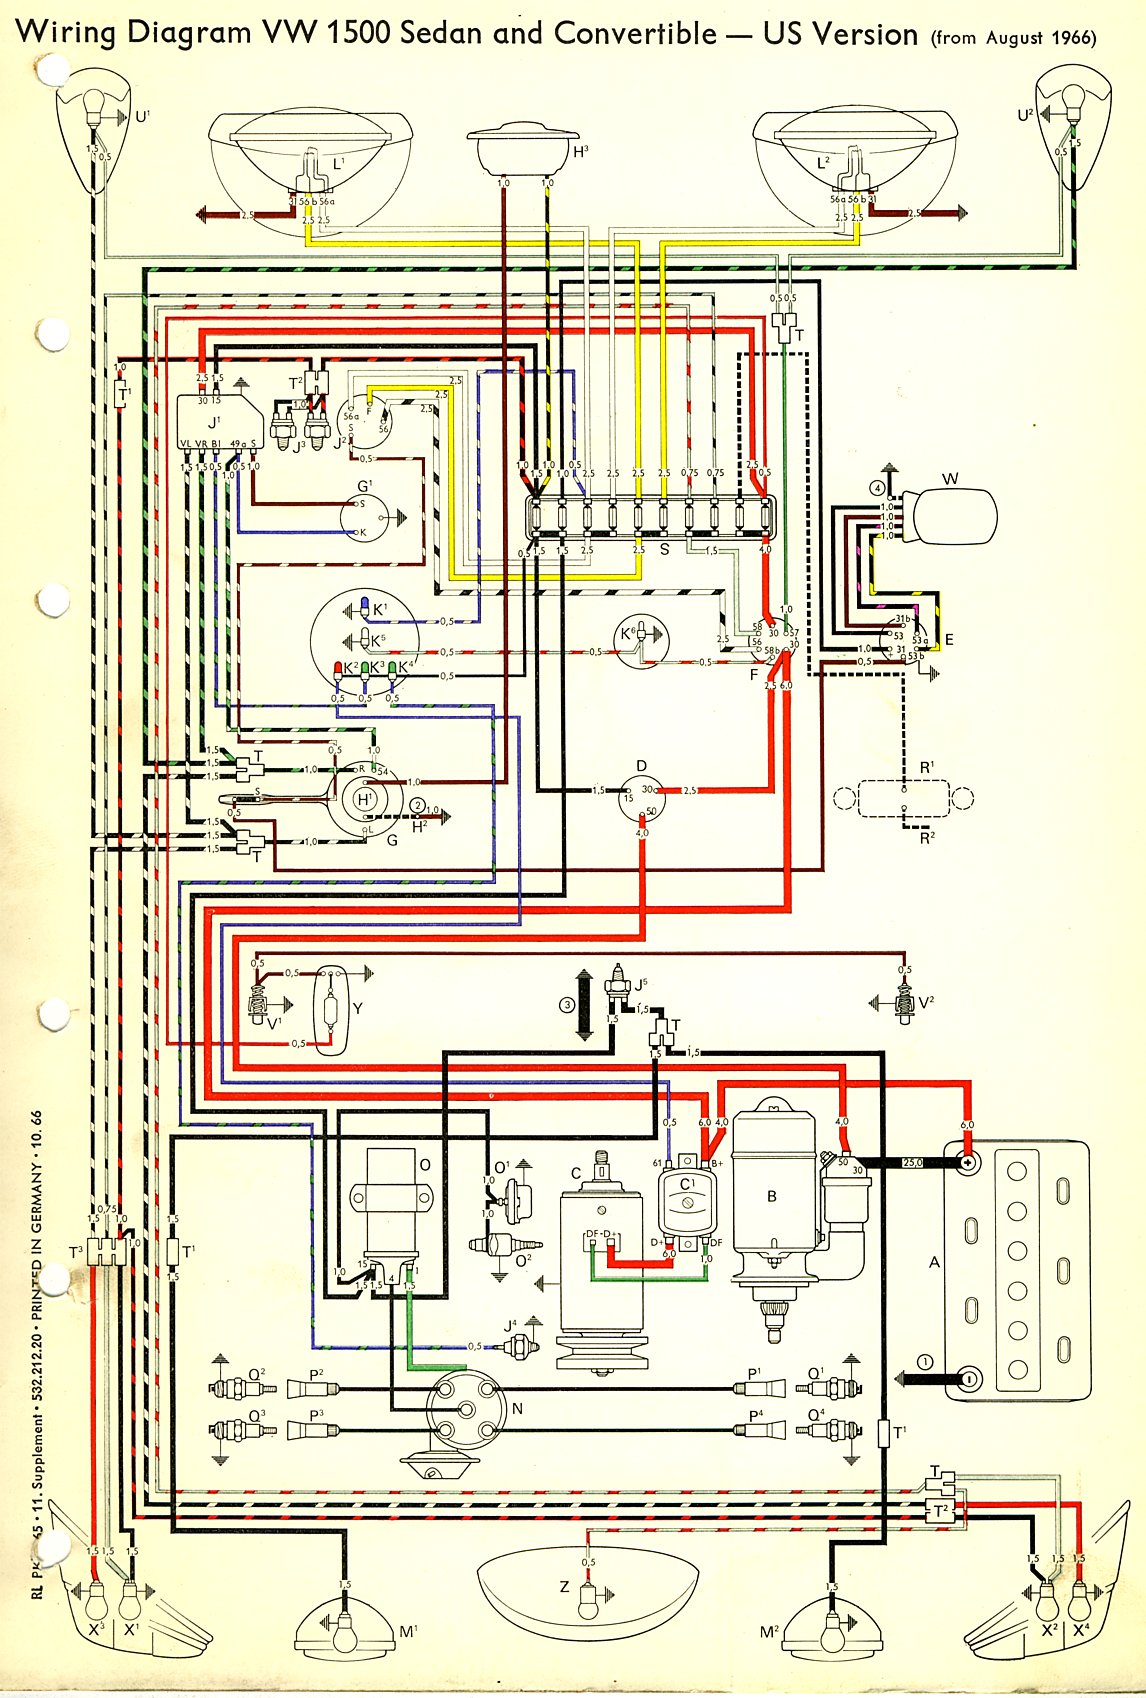 1969 vw type 1 wiring diagram wiring diagrams and schematics beetle wiring diagram vw 9 g box troubleshooting and replacement